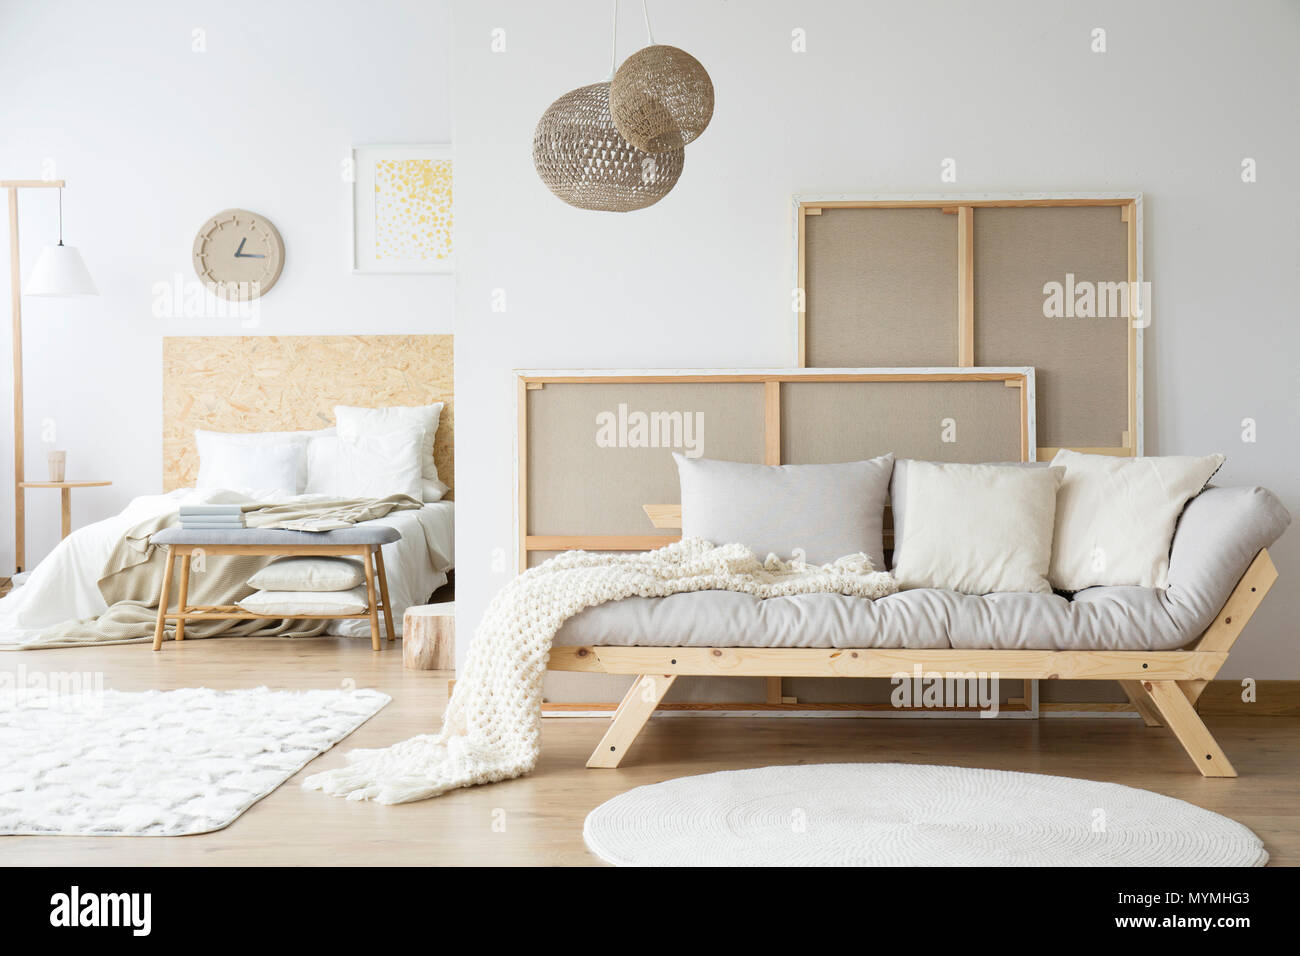 Kings-size bed and a cozy sofa in a monochromatic white room interior - Stock Image